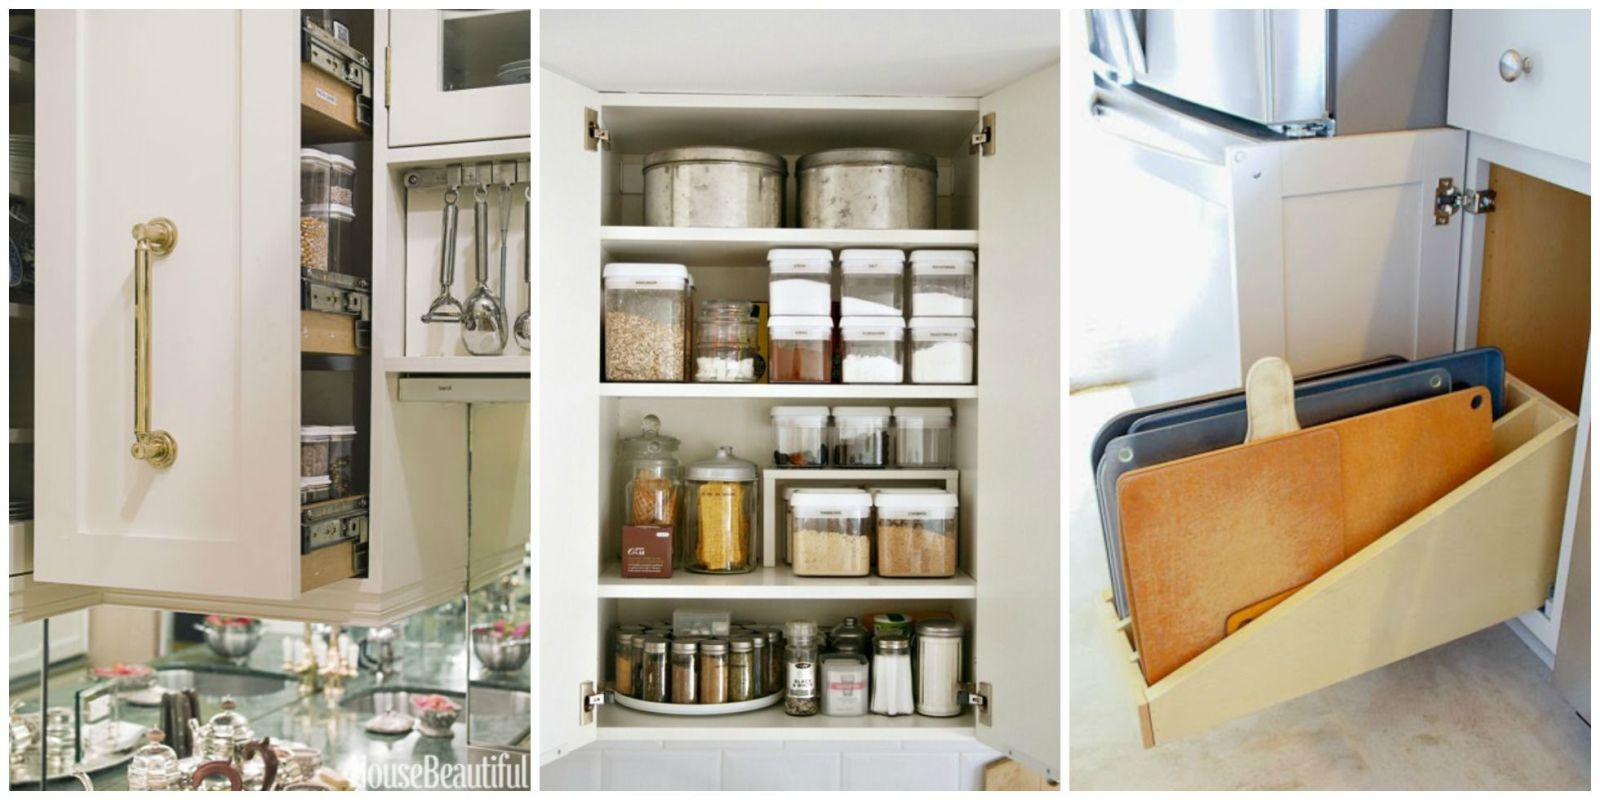 For Kitchen Organization Organizing Kitchen Cabinets Storage Tips For Cabinets